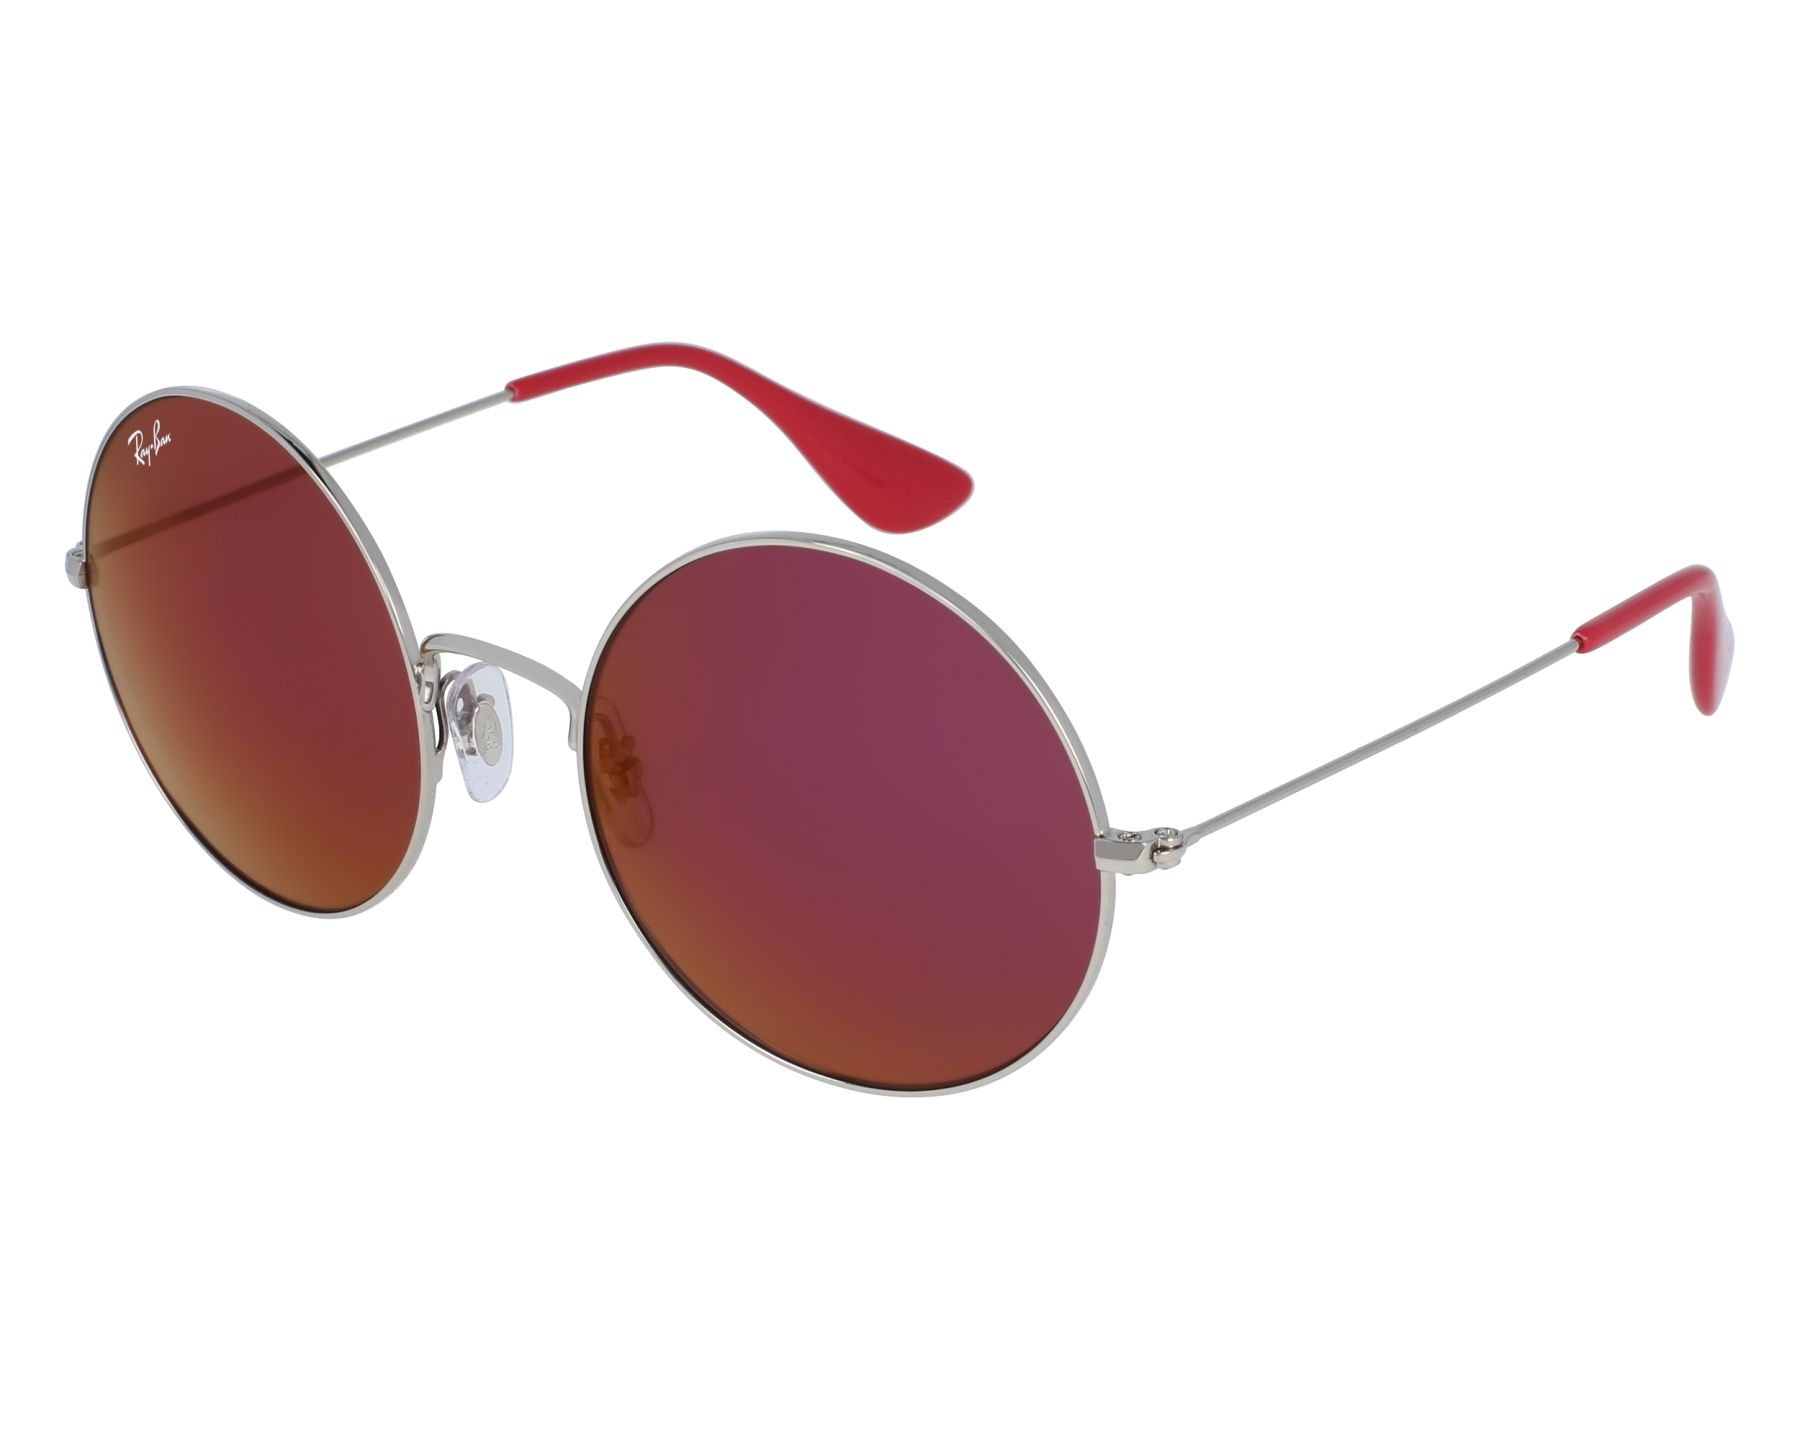 eff56cebca4 Sunglasses Ray-Ban RB-3592 003 D0 55-20 Silver front view